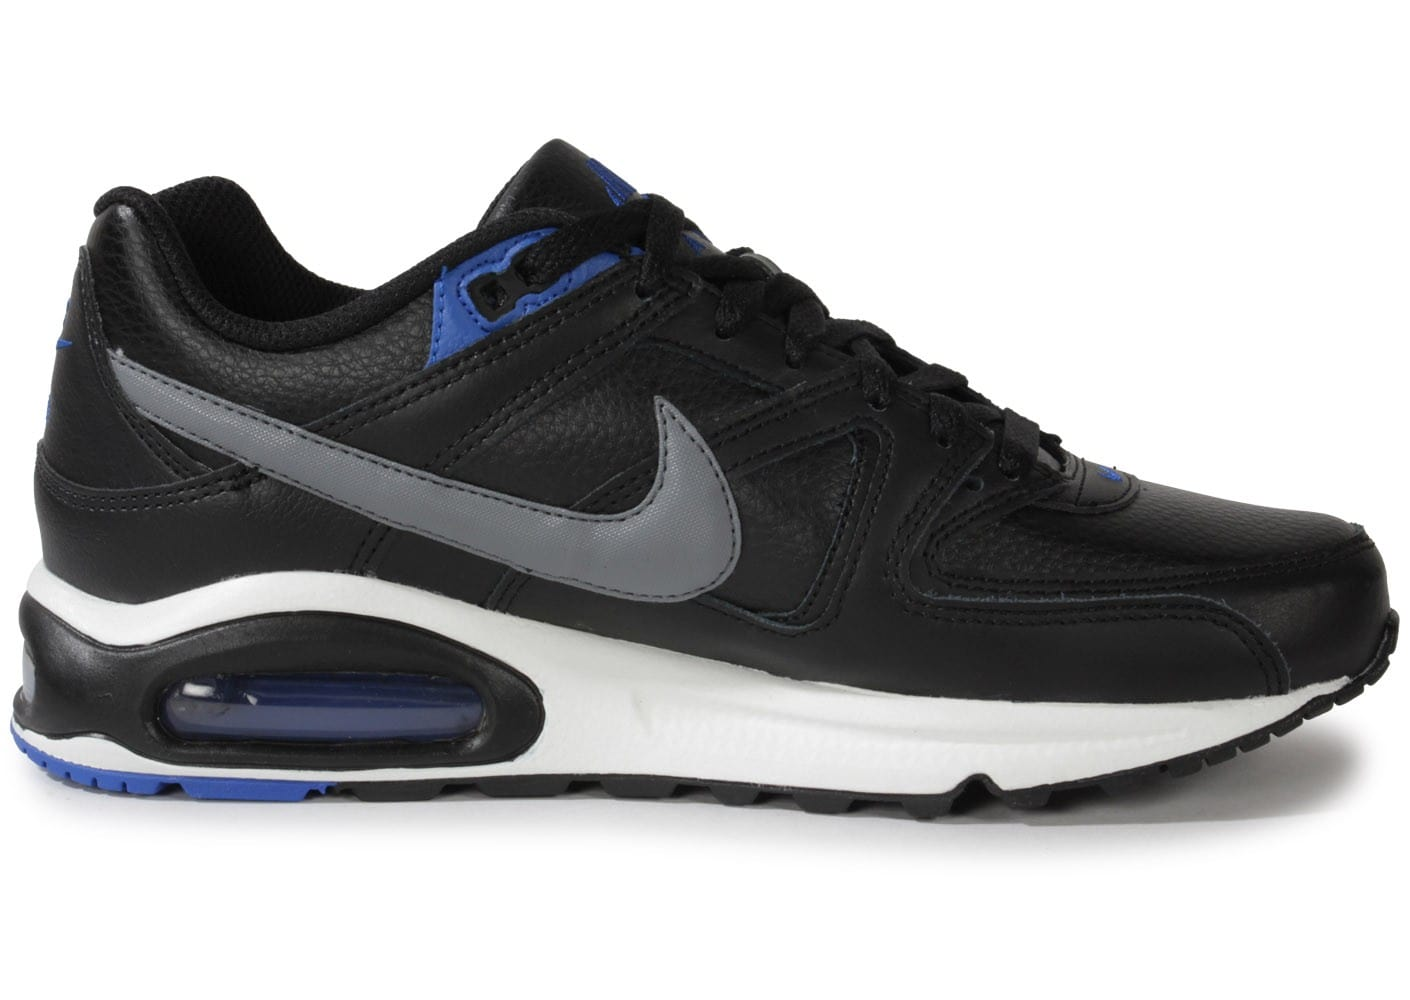 nike air max command cuir noire chaussures baskets homme. Black Bedroom Furniture Sets. Home Design Ideas